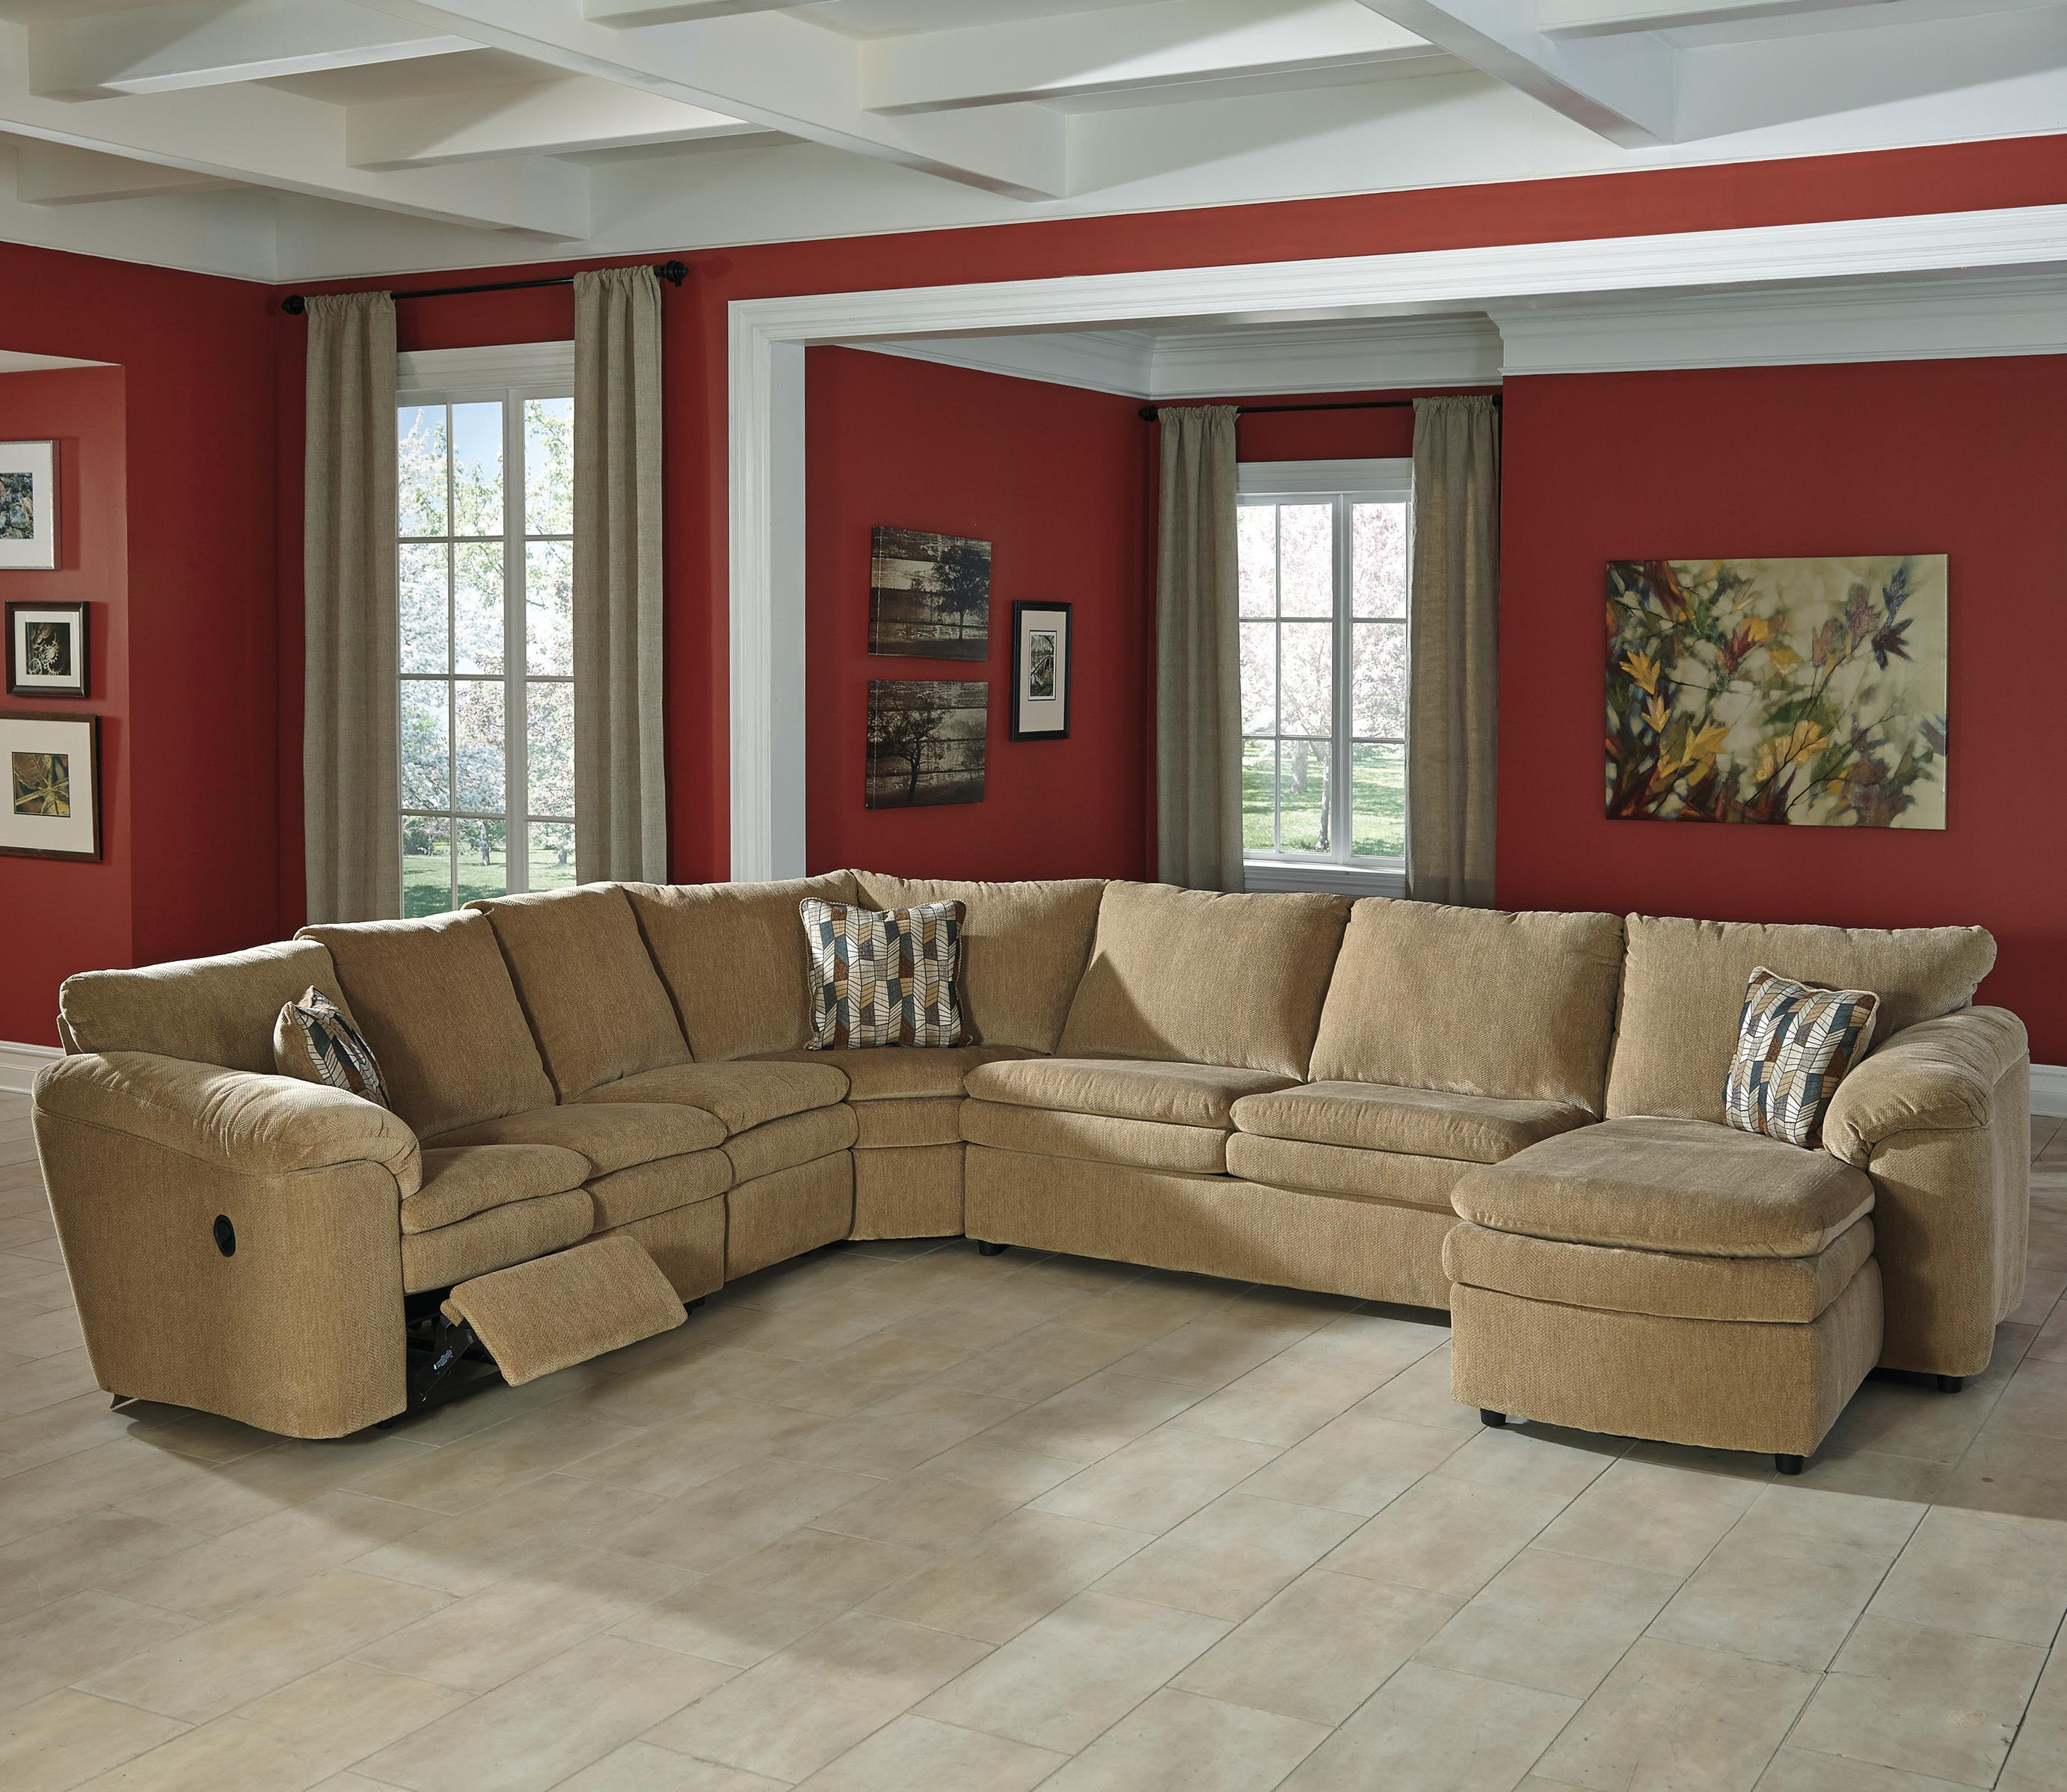 Signature Design By Ashley Coats Casual Contemporary 5 Piece. Leather Sectional  Recliner And Full Size Sleeper Sofa Palliser H ...